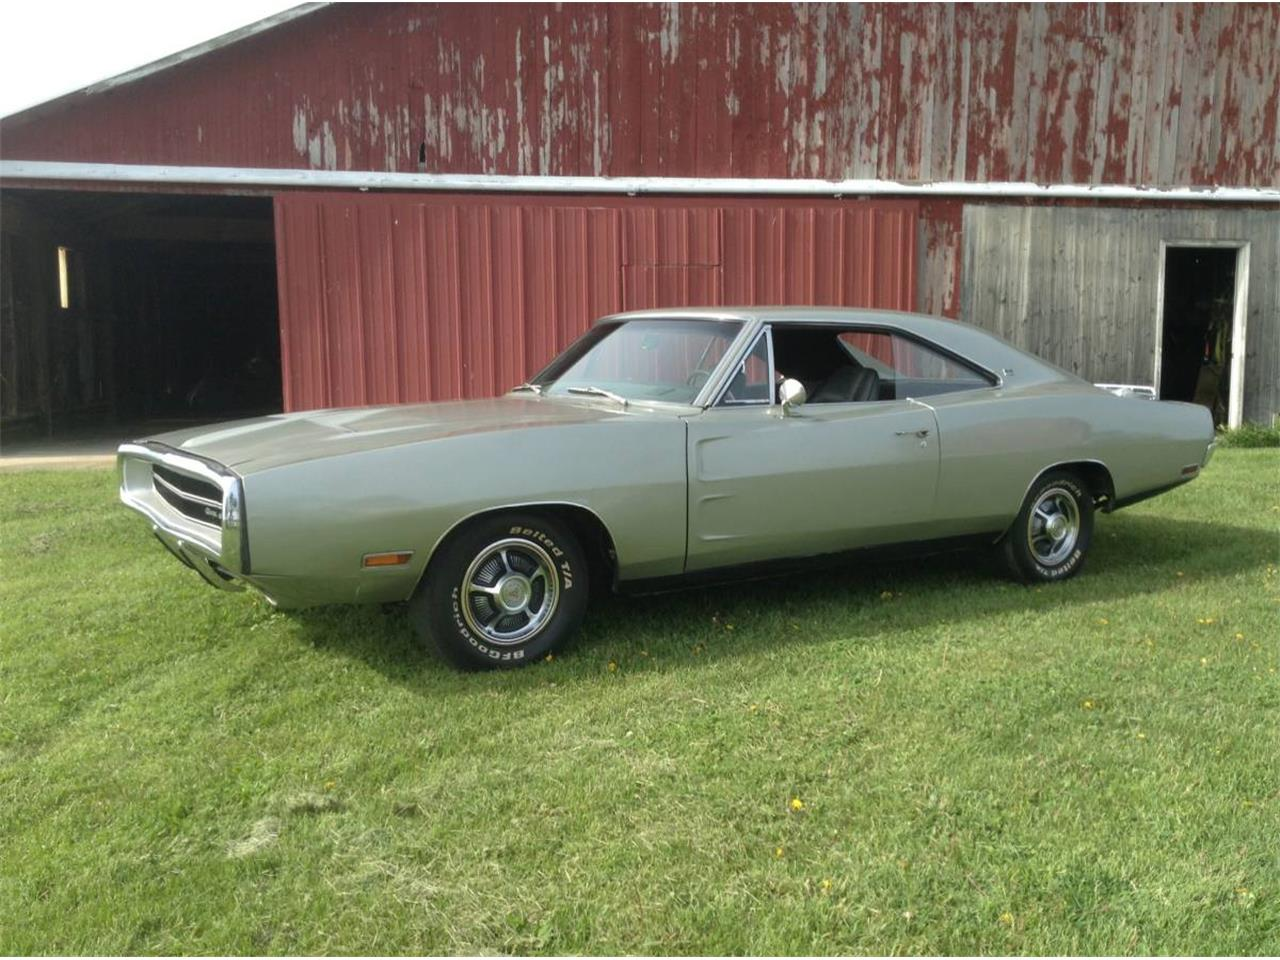 1970 Dodge Charger For Sale Classiccars Com Cc 1140977